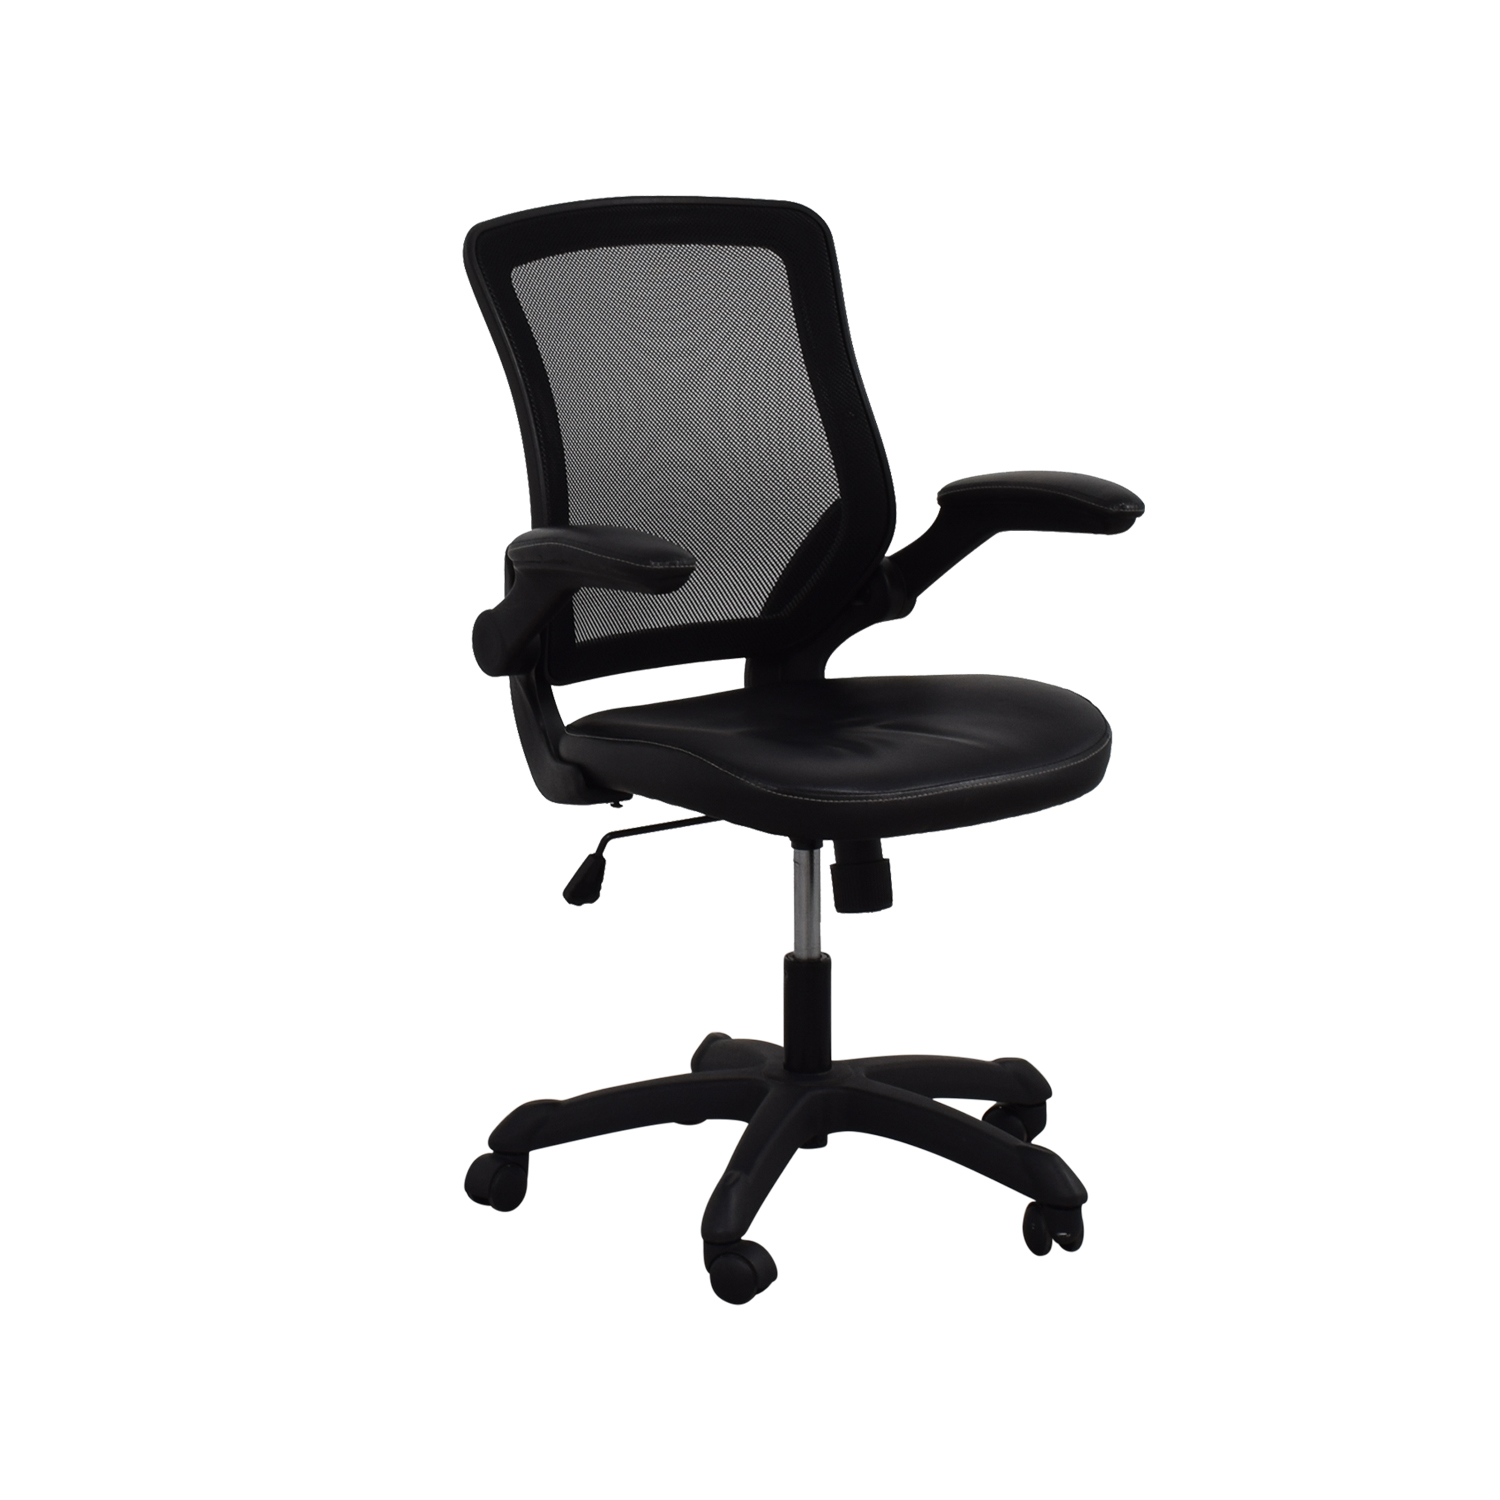 Black Arm Chairs ~ Off adjustable black office arm chair chairs